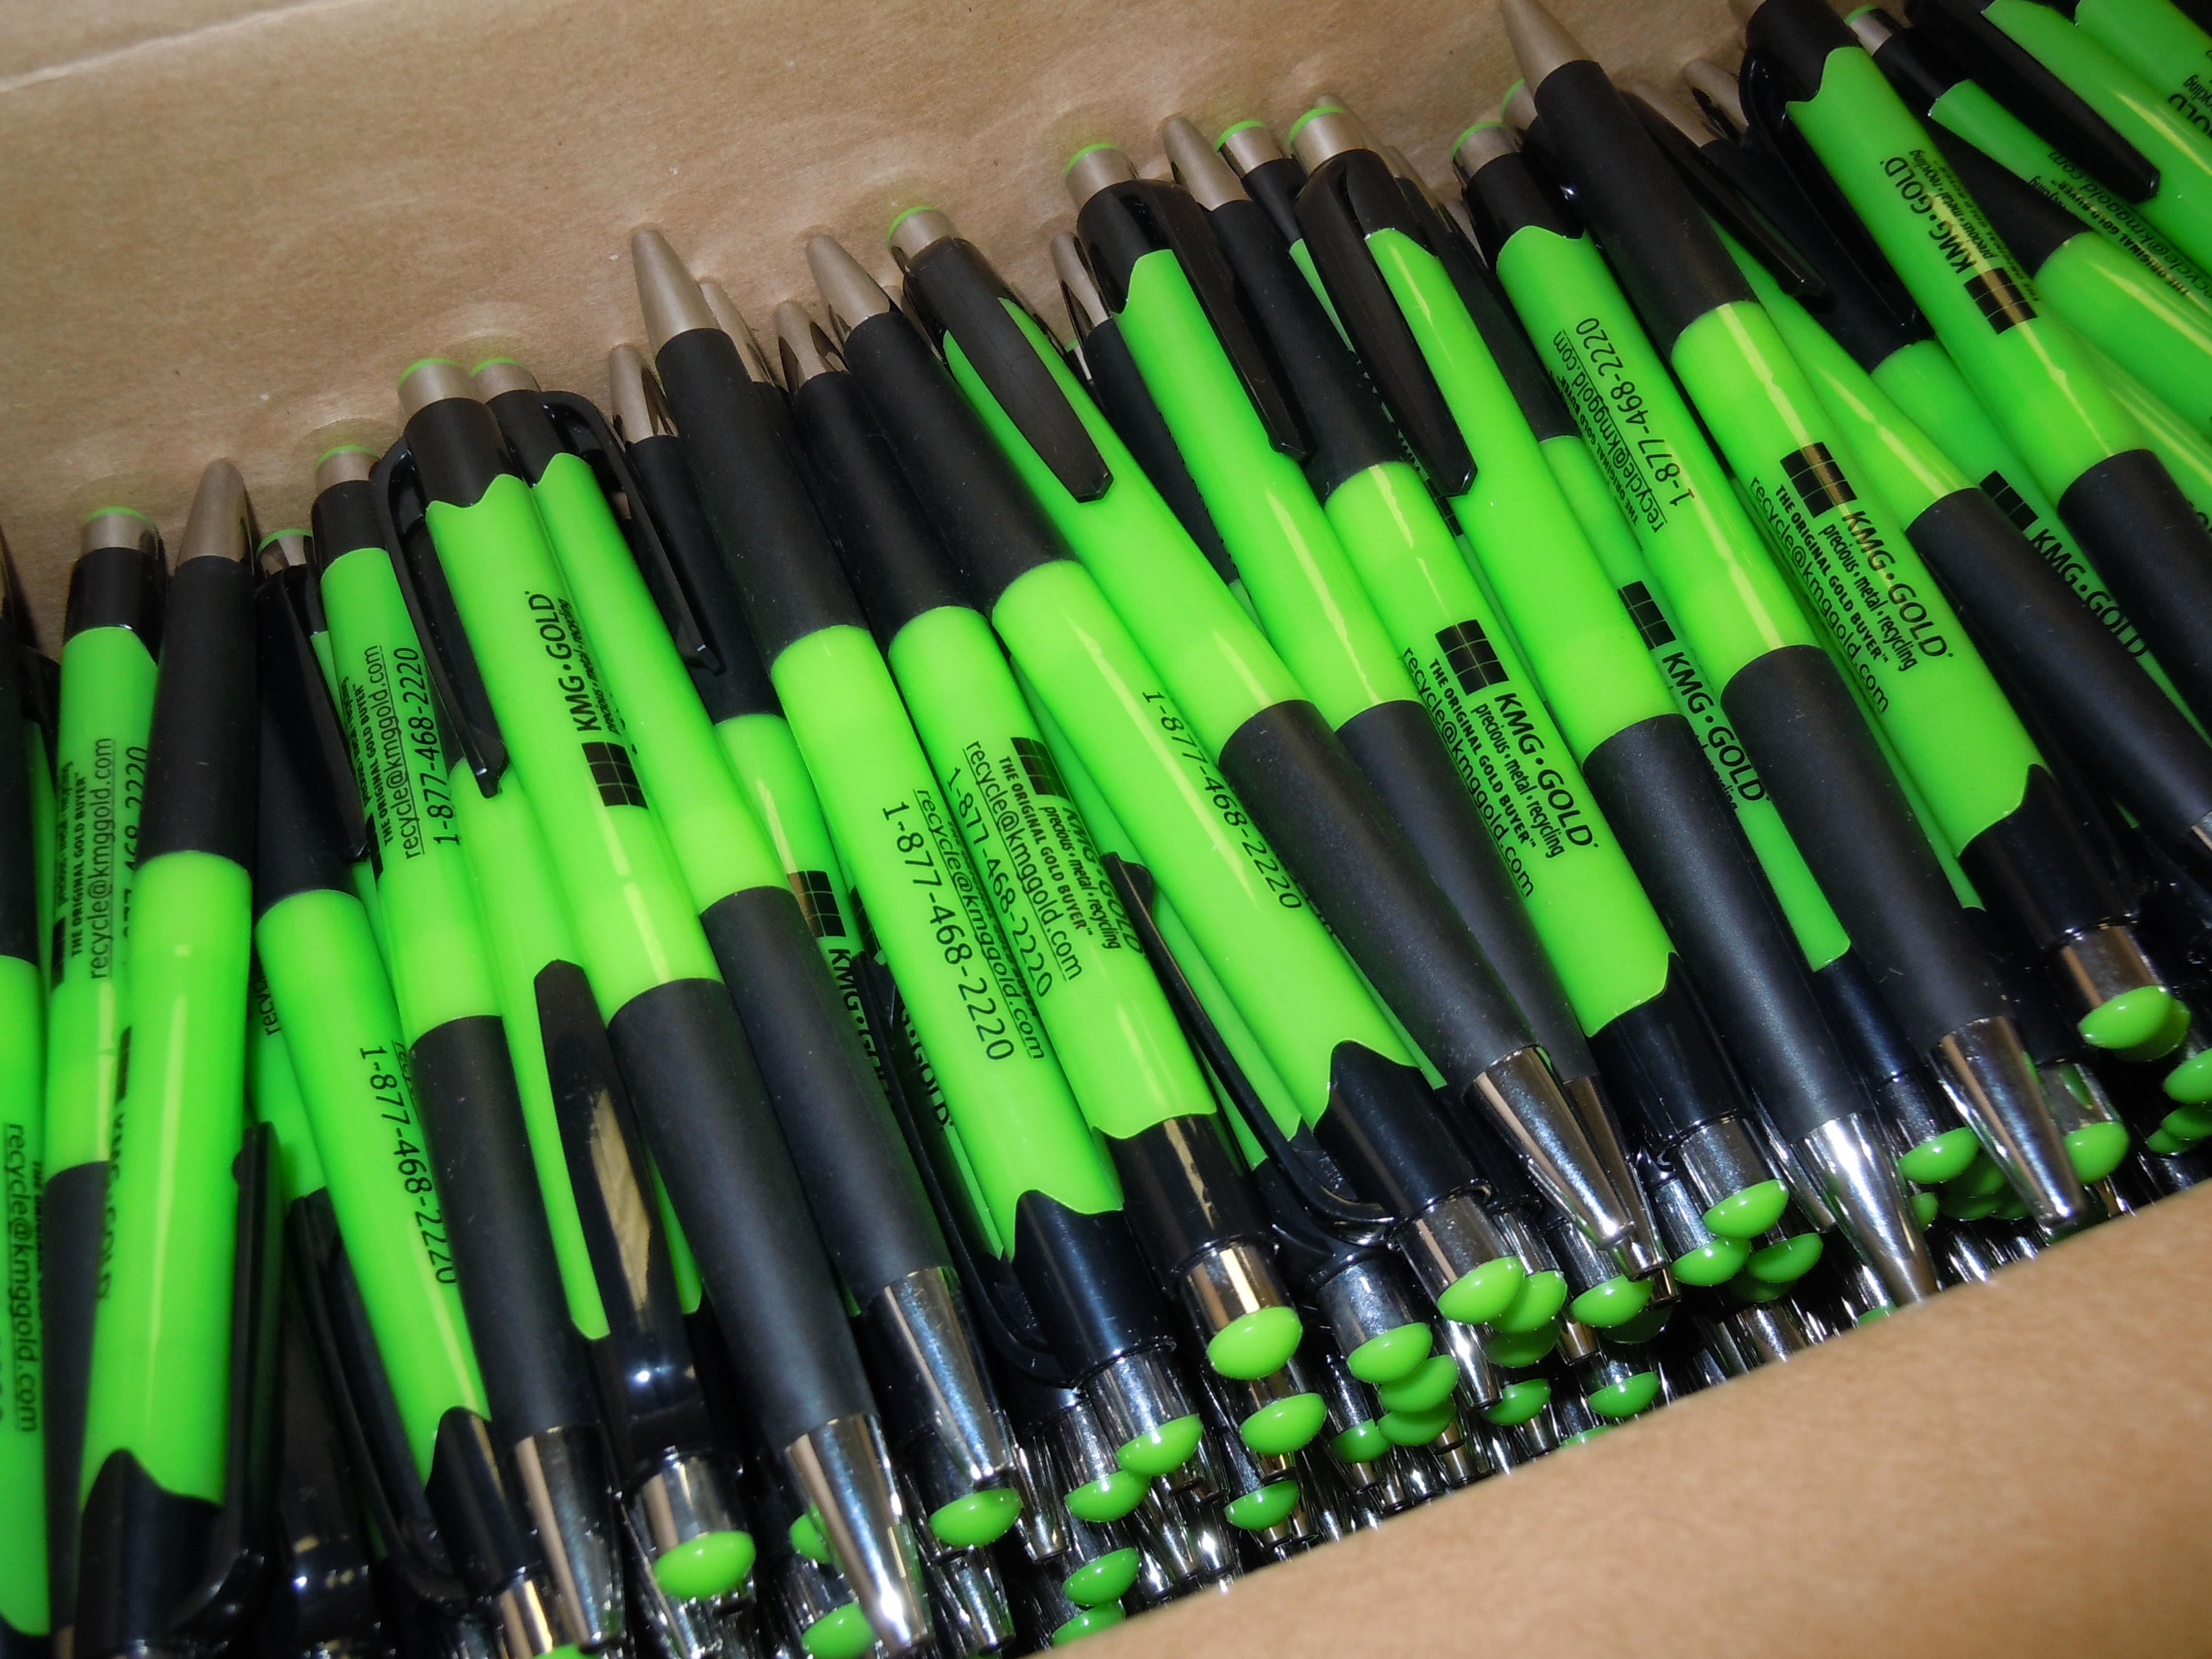 KMG Gold pens for trade show